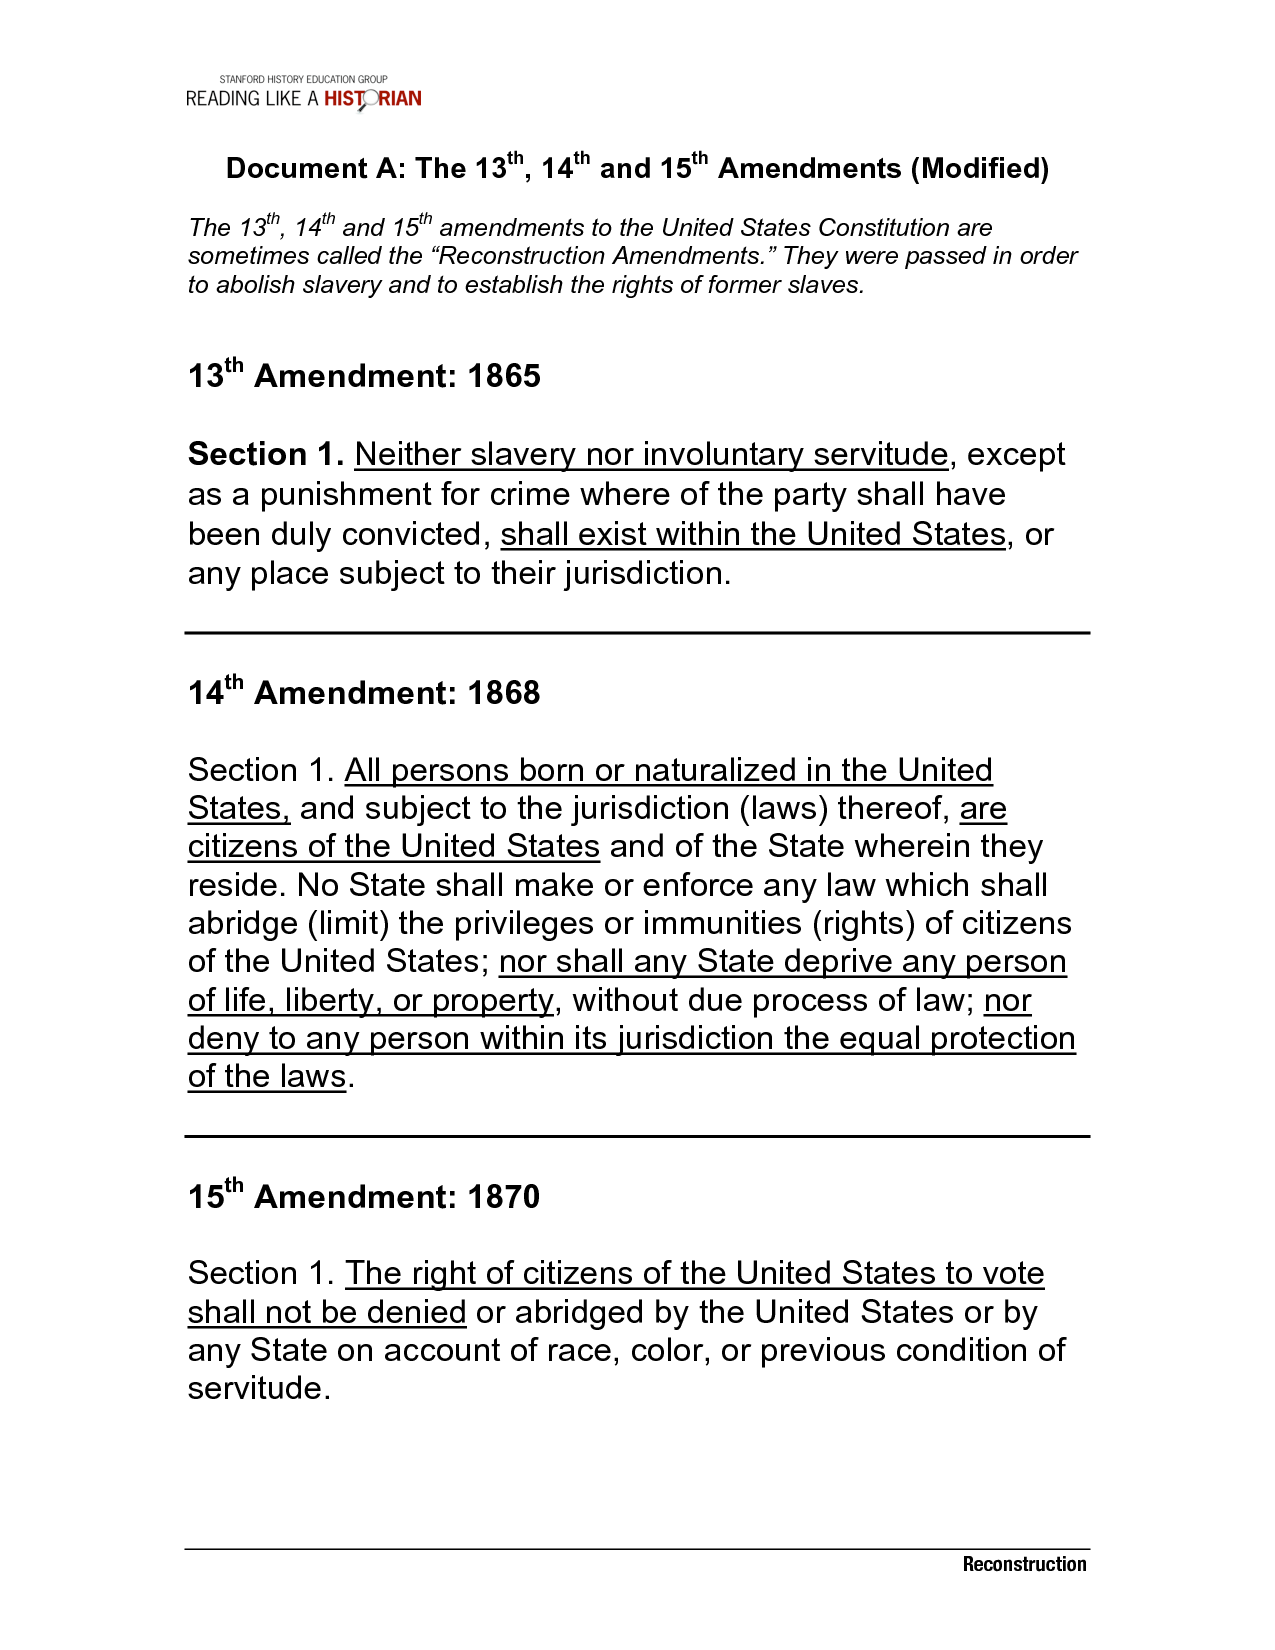 16 Best Images Of 13 14 15 Amendments Worksheet